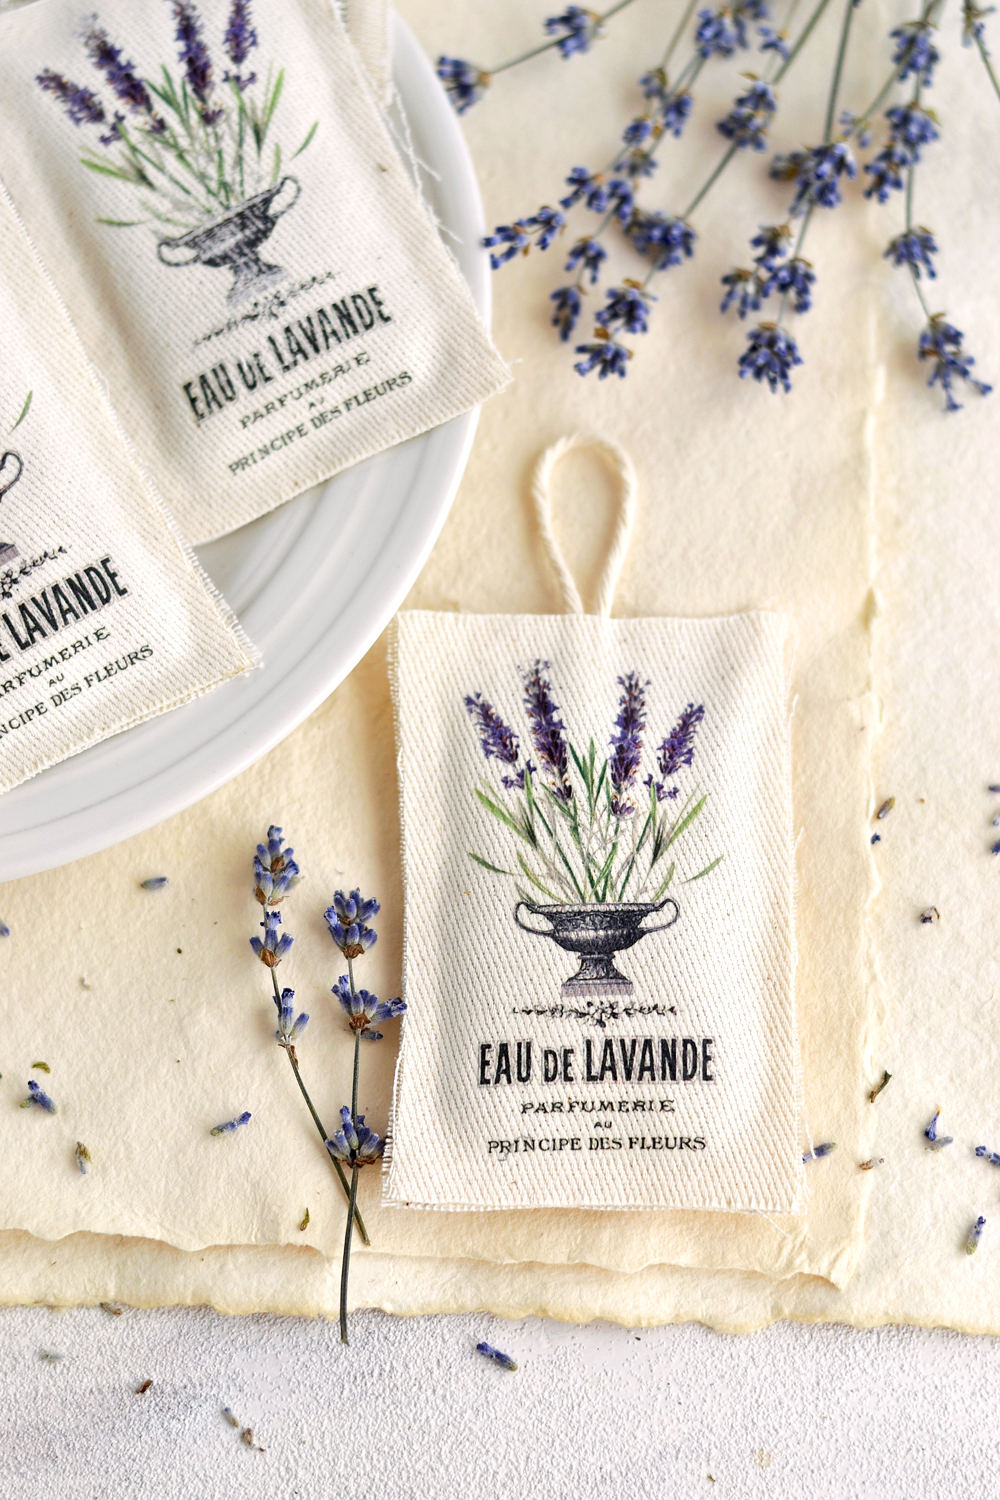 Learn how to make these DIY No Sew Lavender Sachets using the iron on image transfer technique, scrap pieces of fabric and your glue gun! Free printable included! #frenchephemera #nosew #vintage #lavender #lavendersachets #diy #ironontransfer #imagetransfer